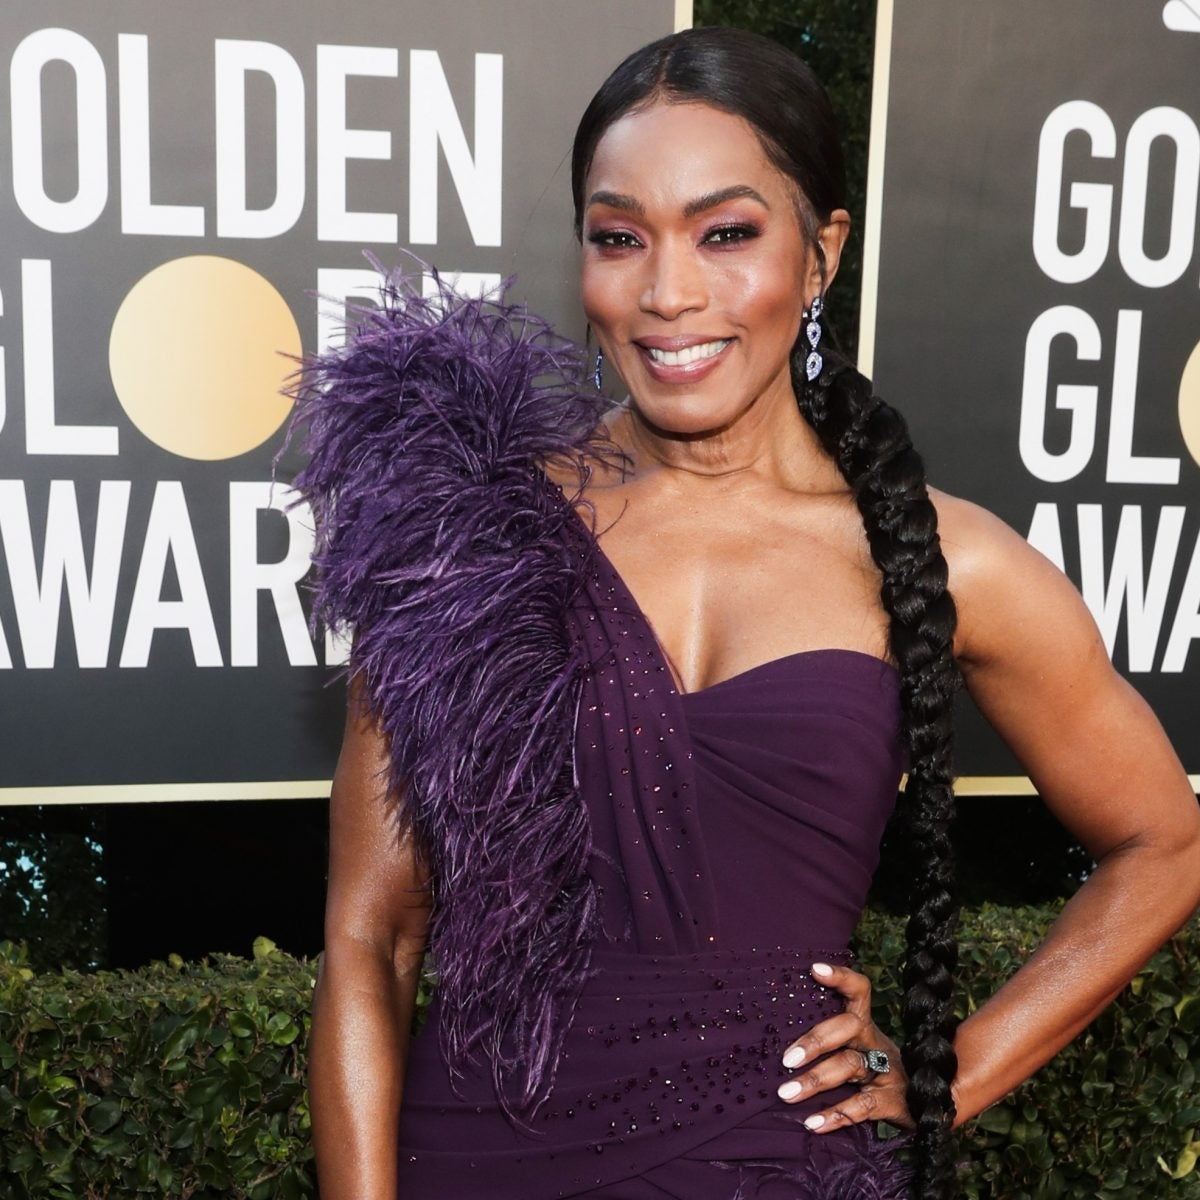 Let's Talk About Angela Bassett's Braid At The Golden Globes Awards